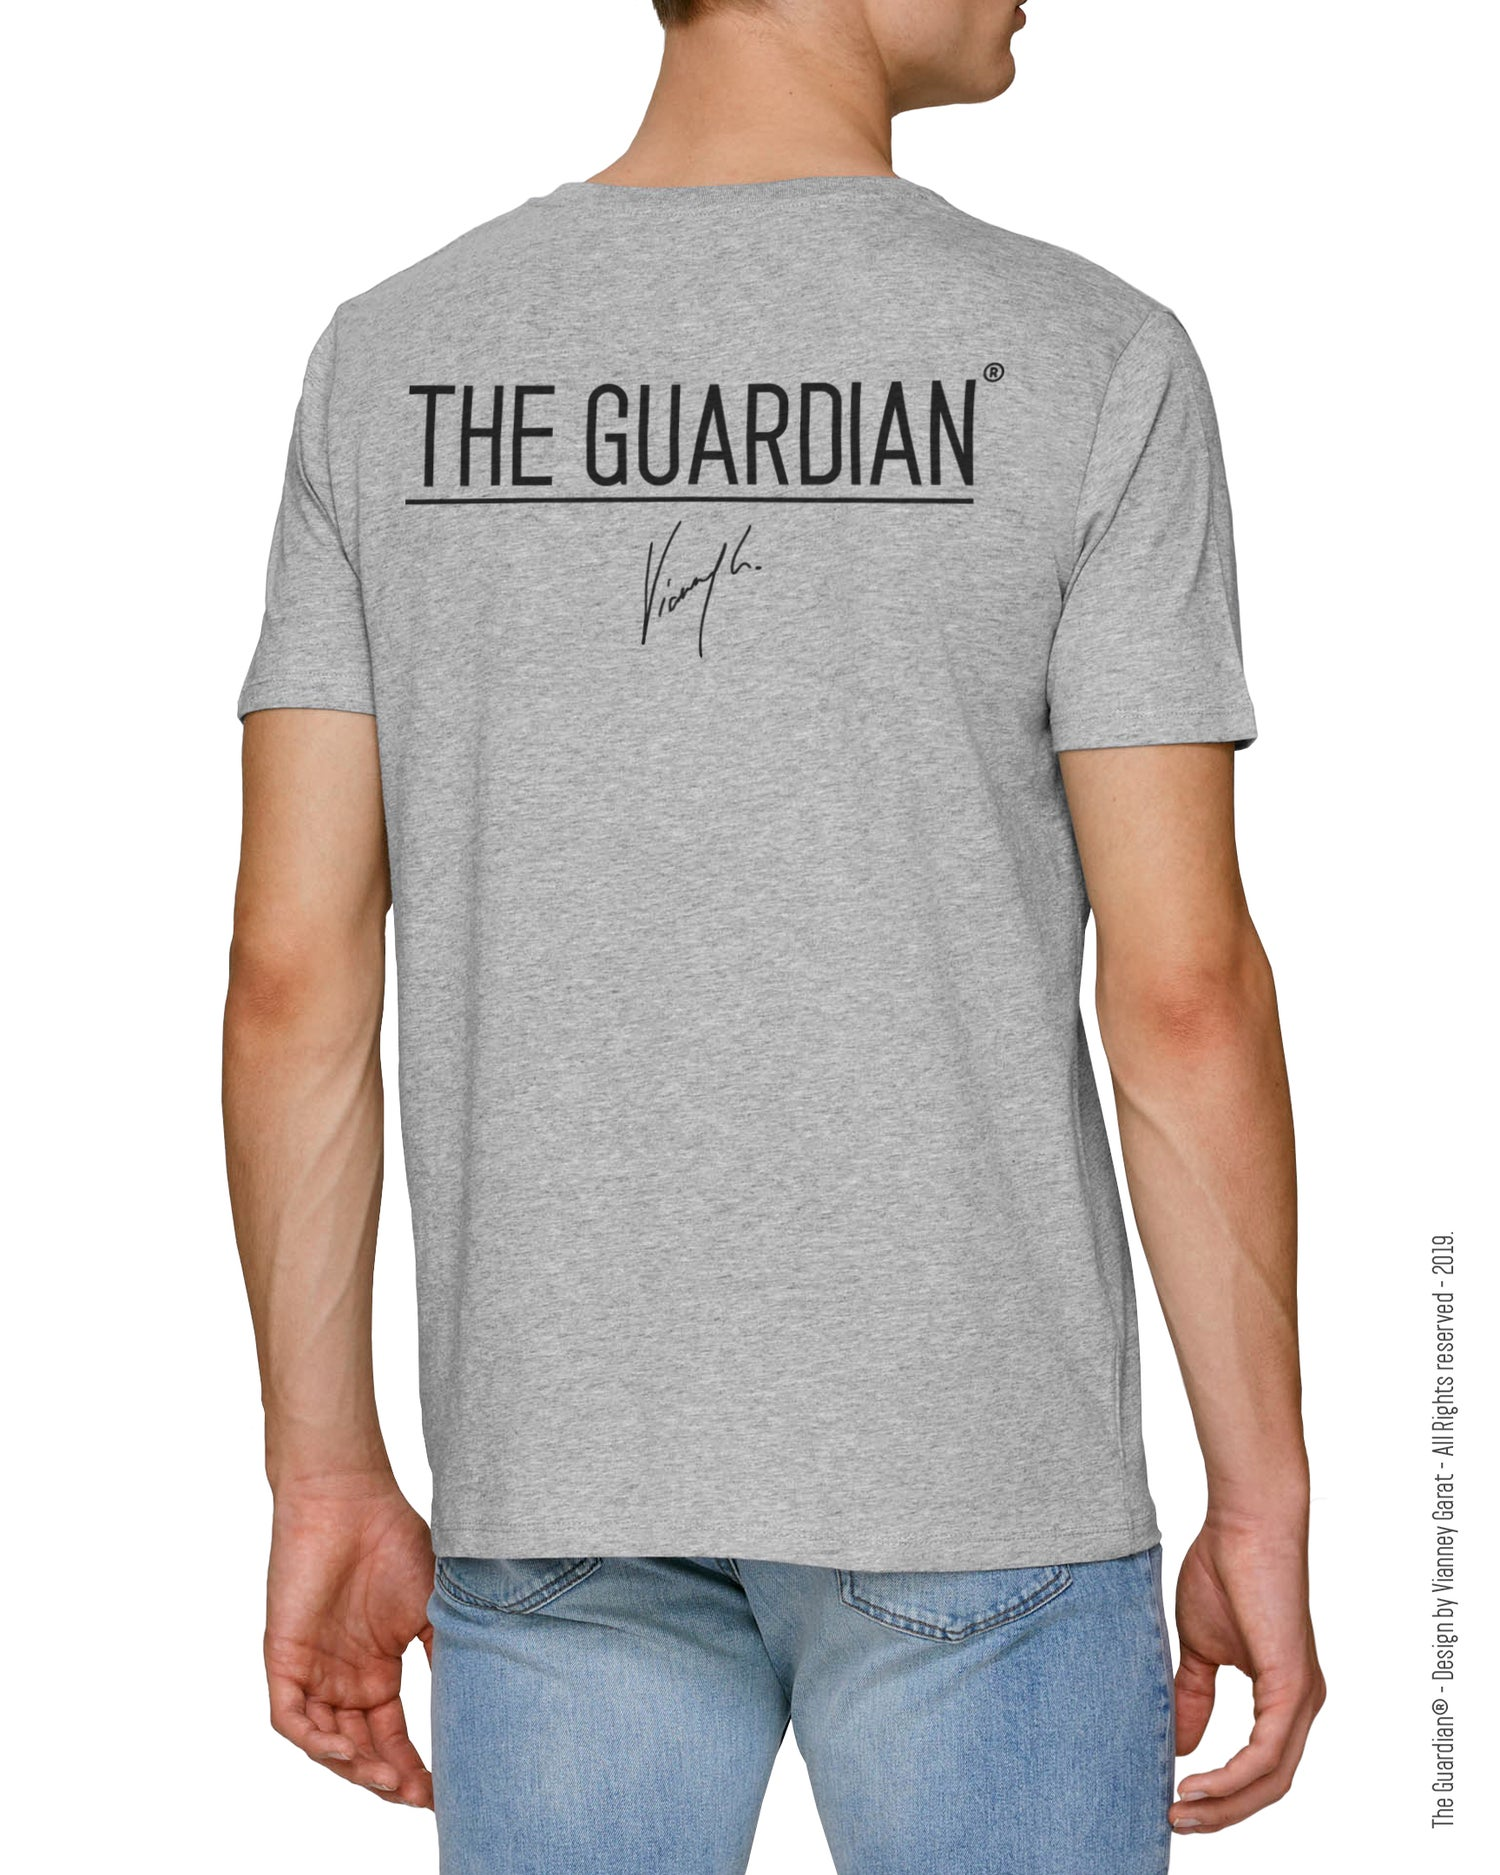 Image of T-SHIRT THE GUARDIAN® - LIGHT GREY EDITION - Limited Edition